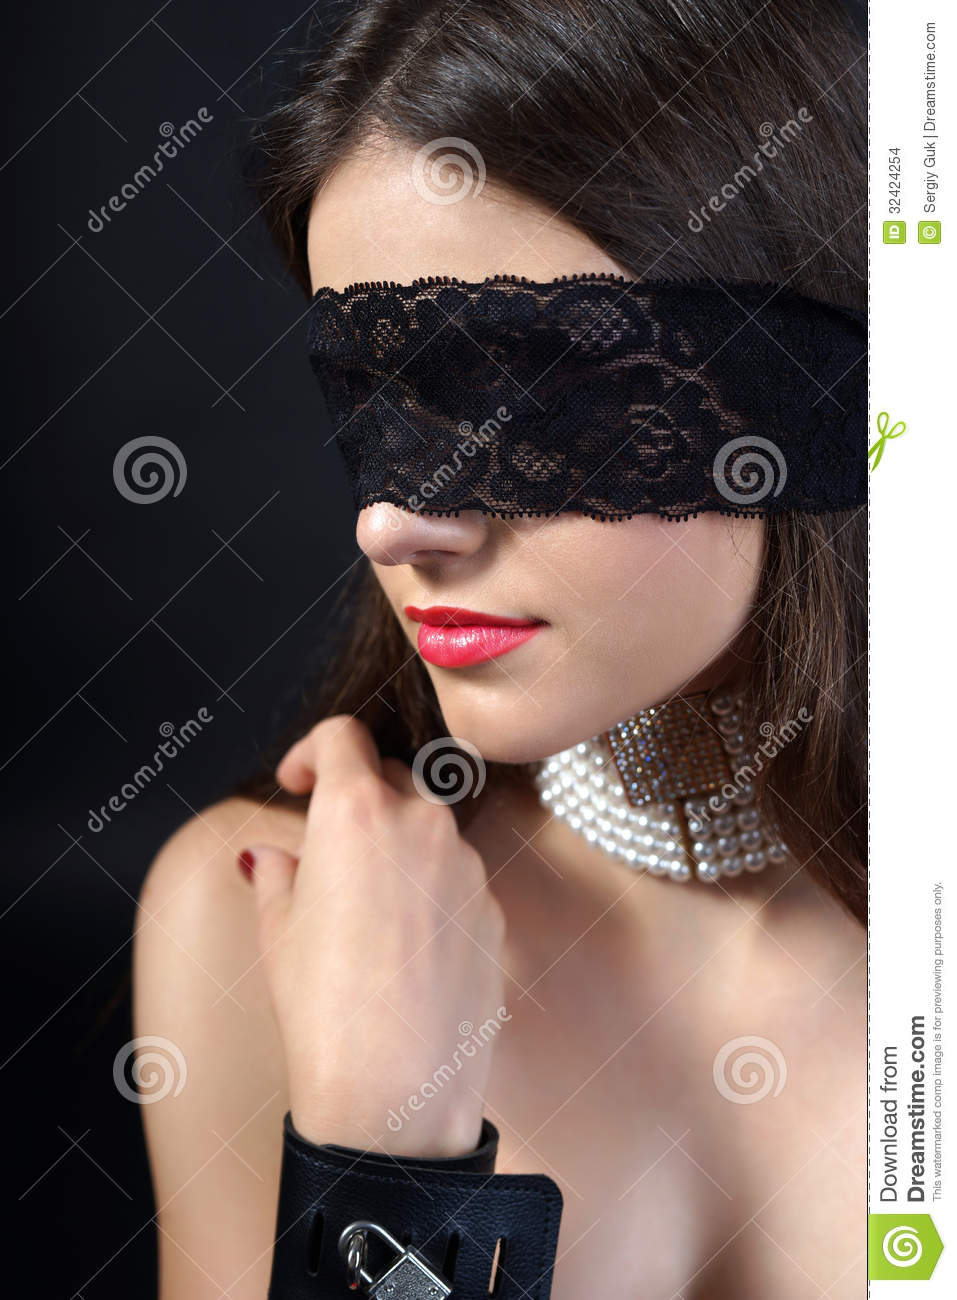 Blindfold Sexy 79